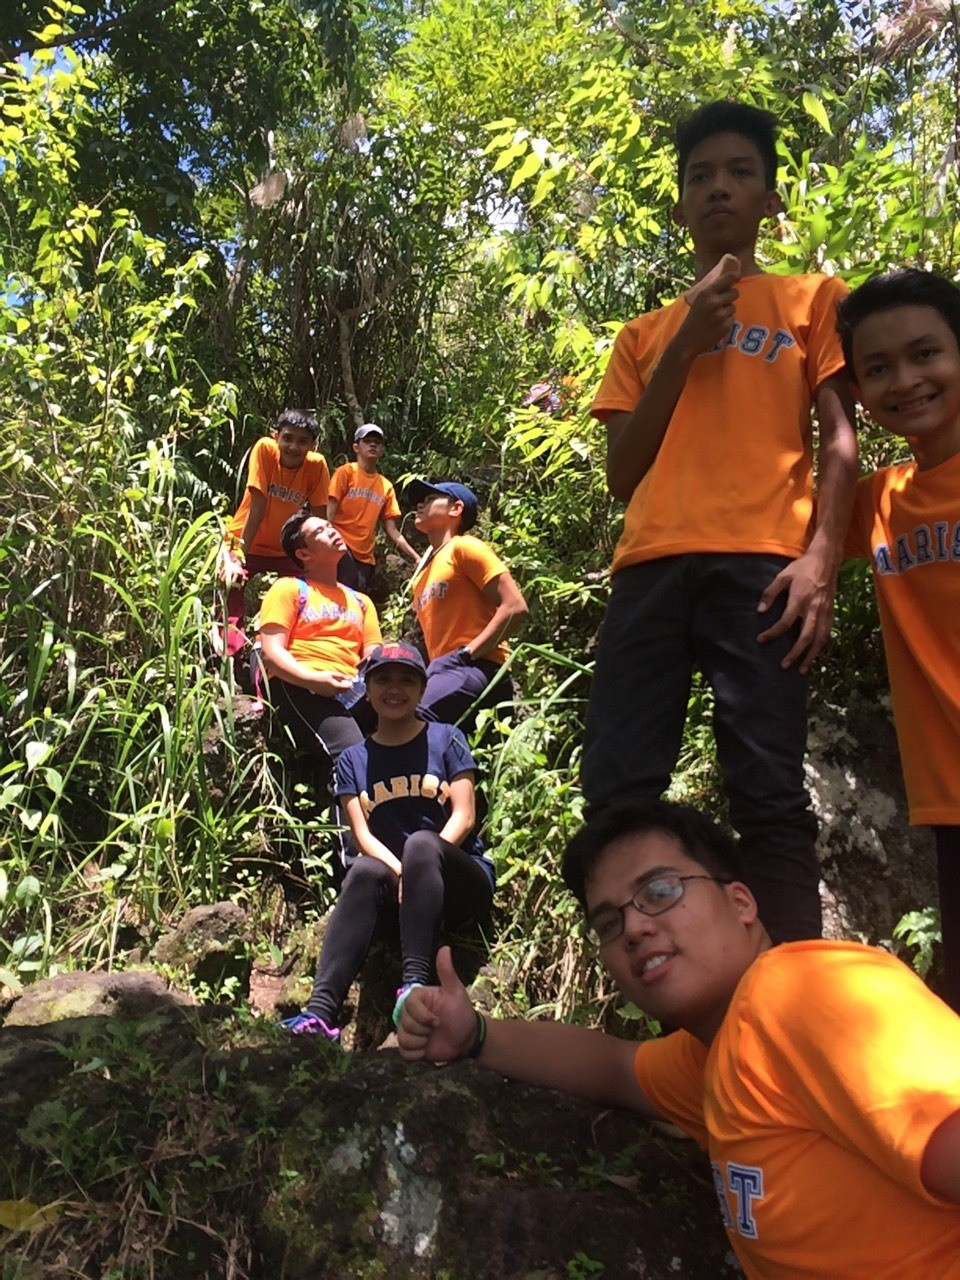 SLR RISING UP TO THE CHALLENGE! Saint Lorenzo Ruiz together with Ma'am Ching are climbing Mt. Banahaw during their Outbound trip in Dolores Quezon on Sept. 23,2016.